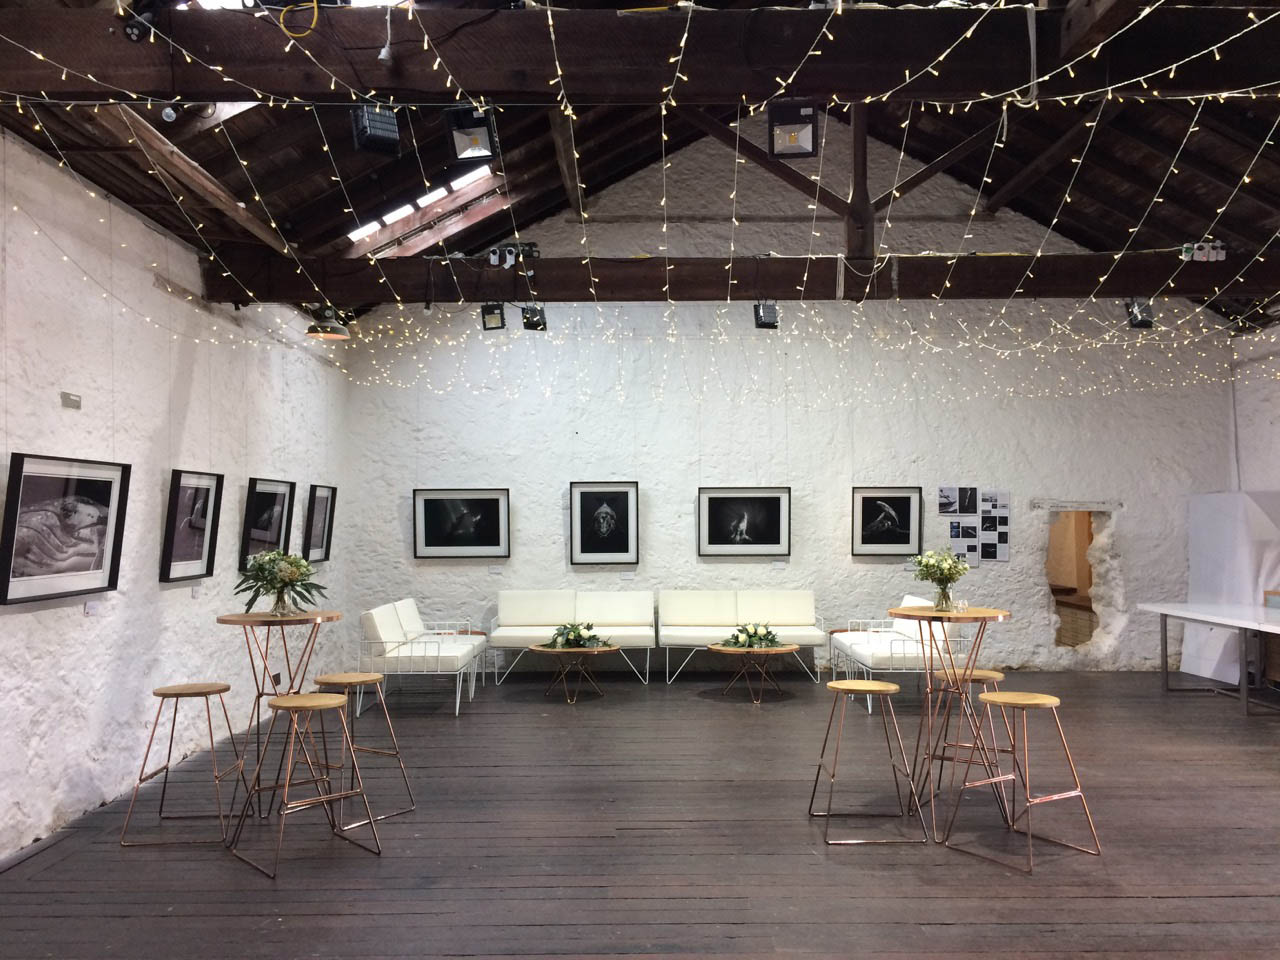 A Gallery Set Up With A Couch And Artwork